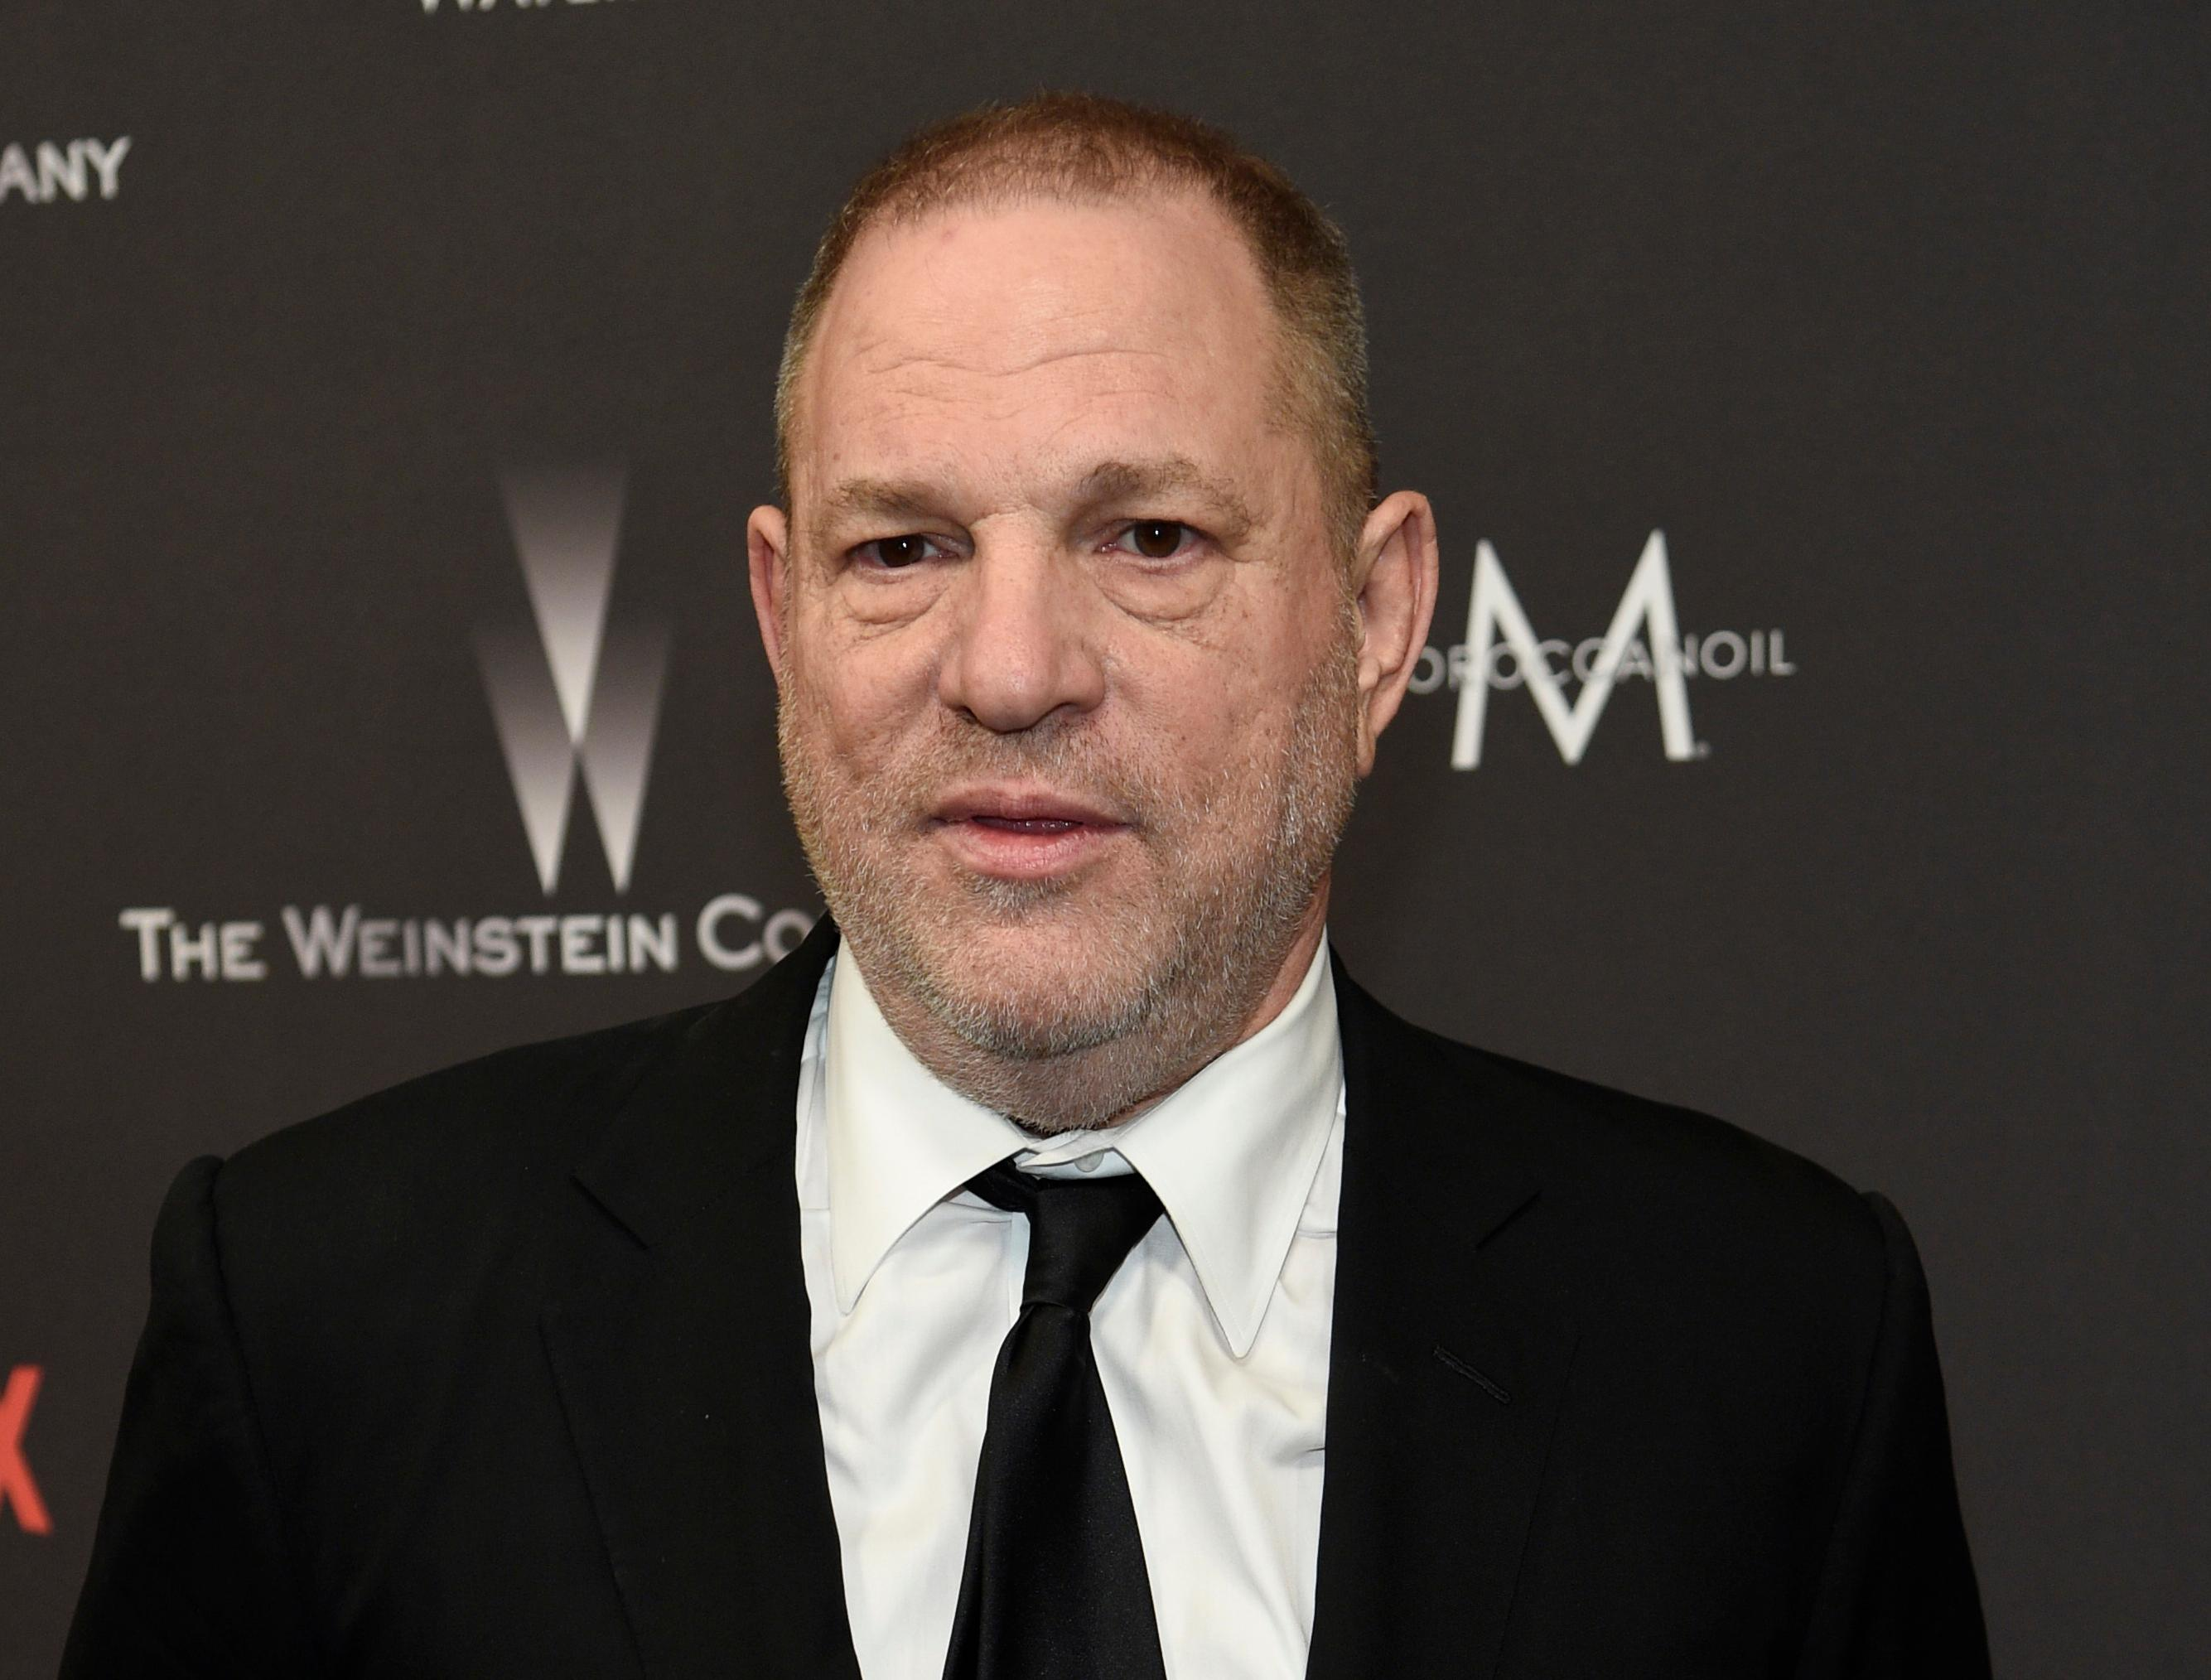 FILE - In this Jan. 8, 2017, file photo, Harvey Weinstein arrives at The Weinstein Company and Netflix Golden Globes afterparty in Beverly Hills, Calif. (Photo by Chris Pizzello/Invision/AP, File)